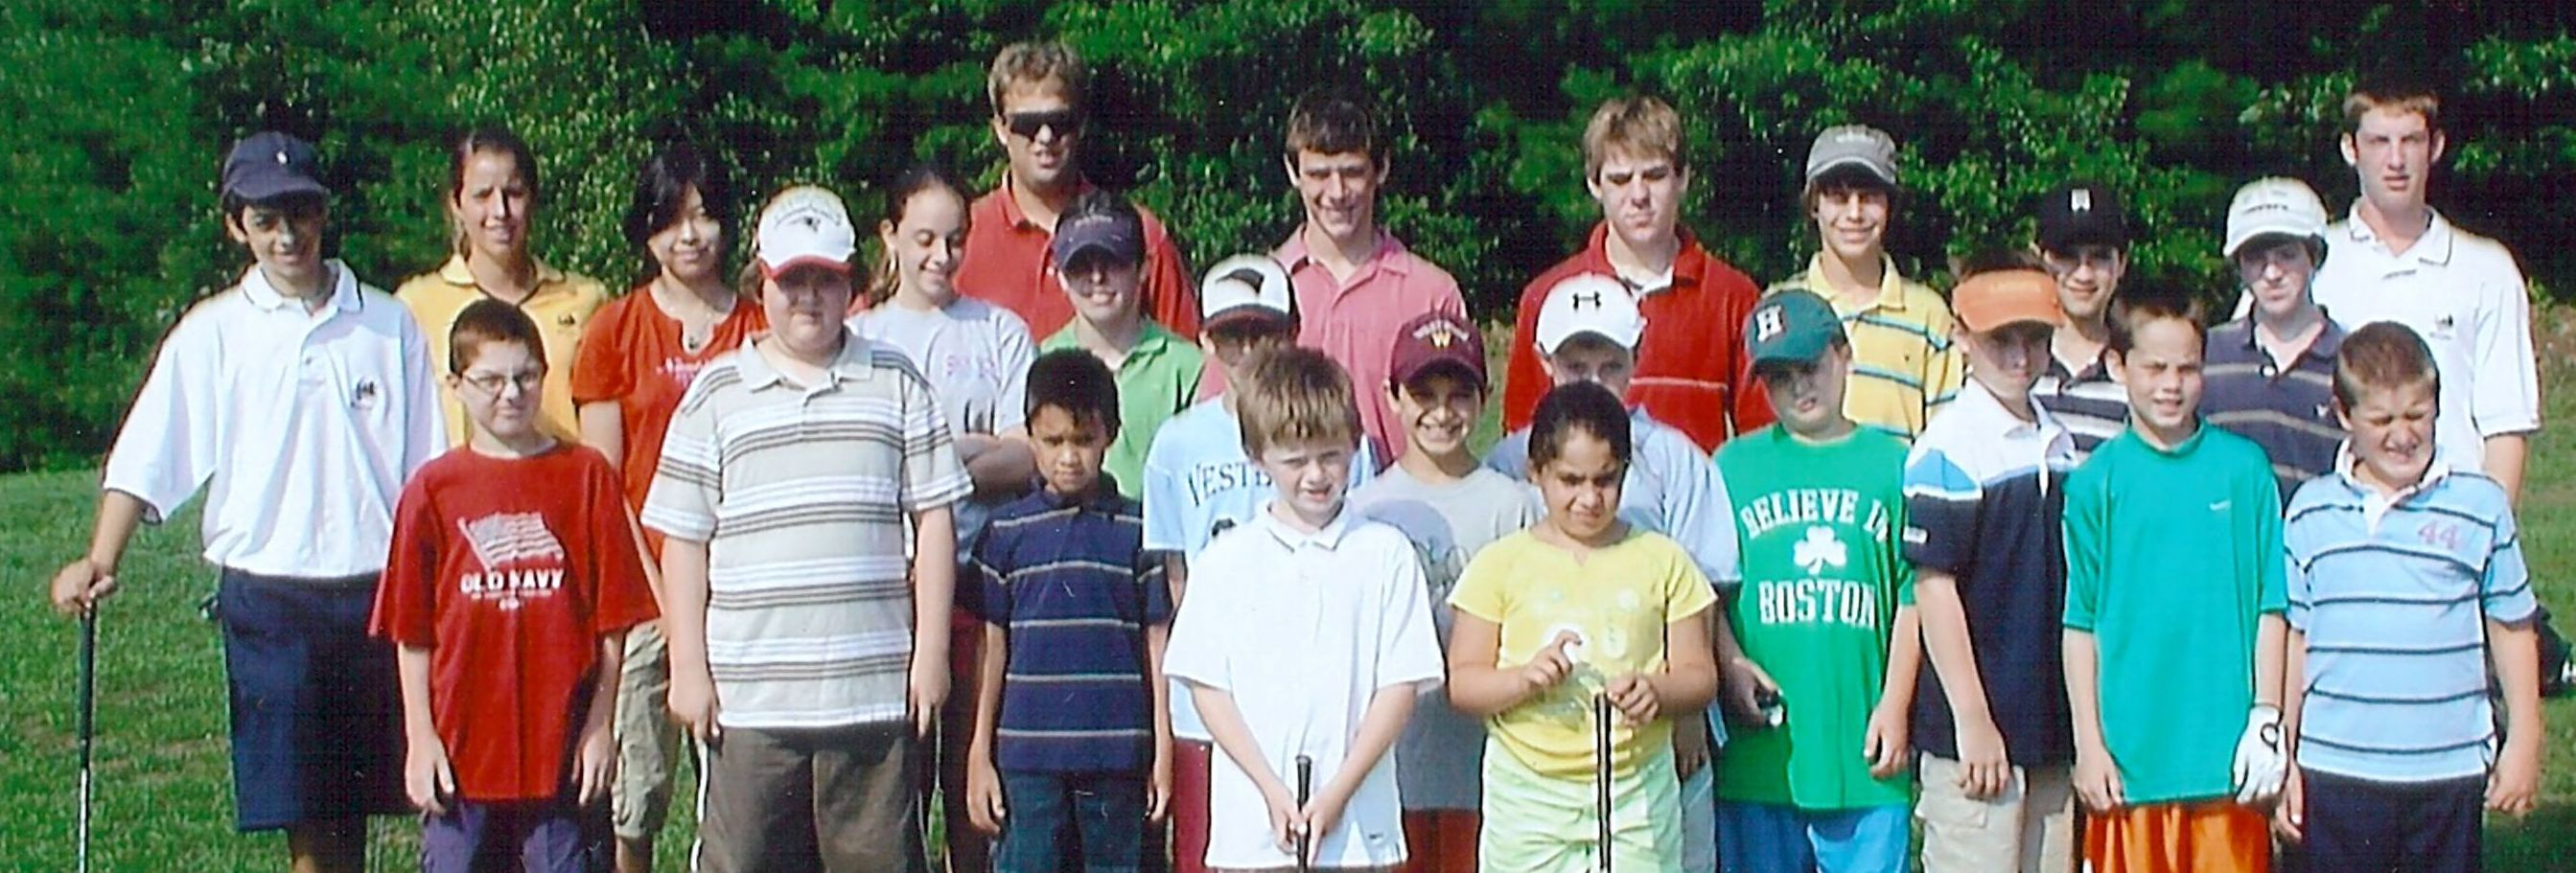 Juniper Hills Junior Golf Program - Worcester Golf